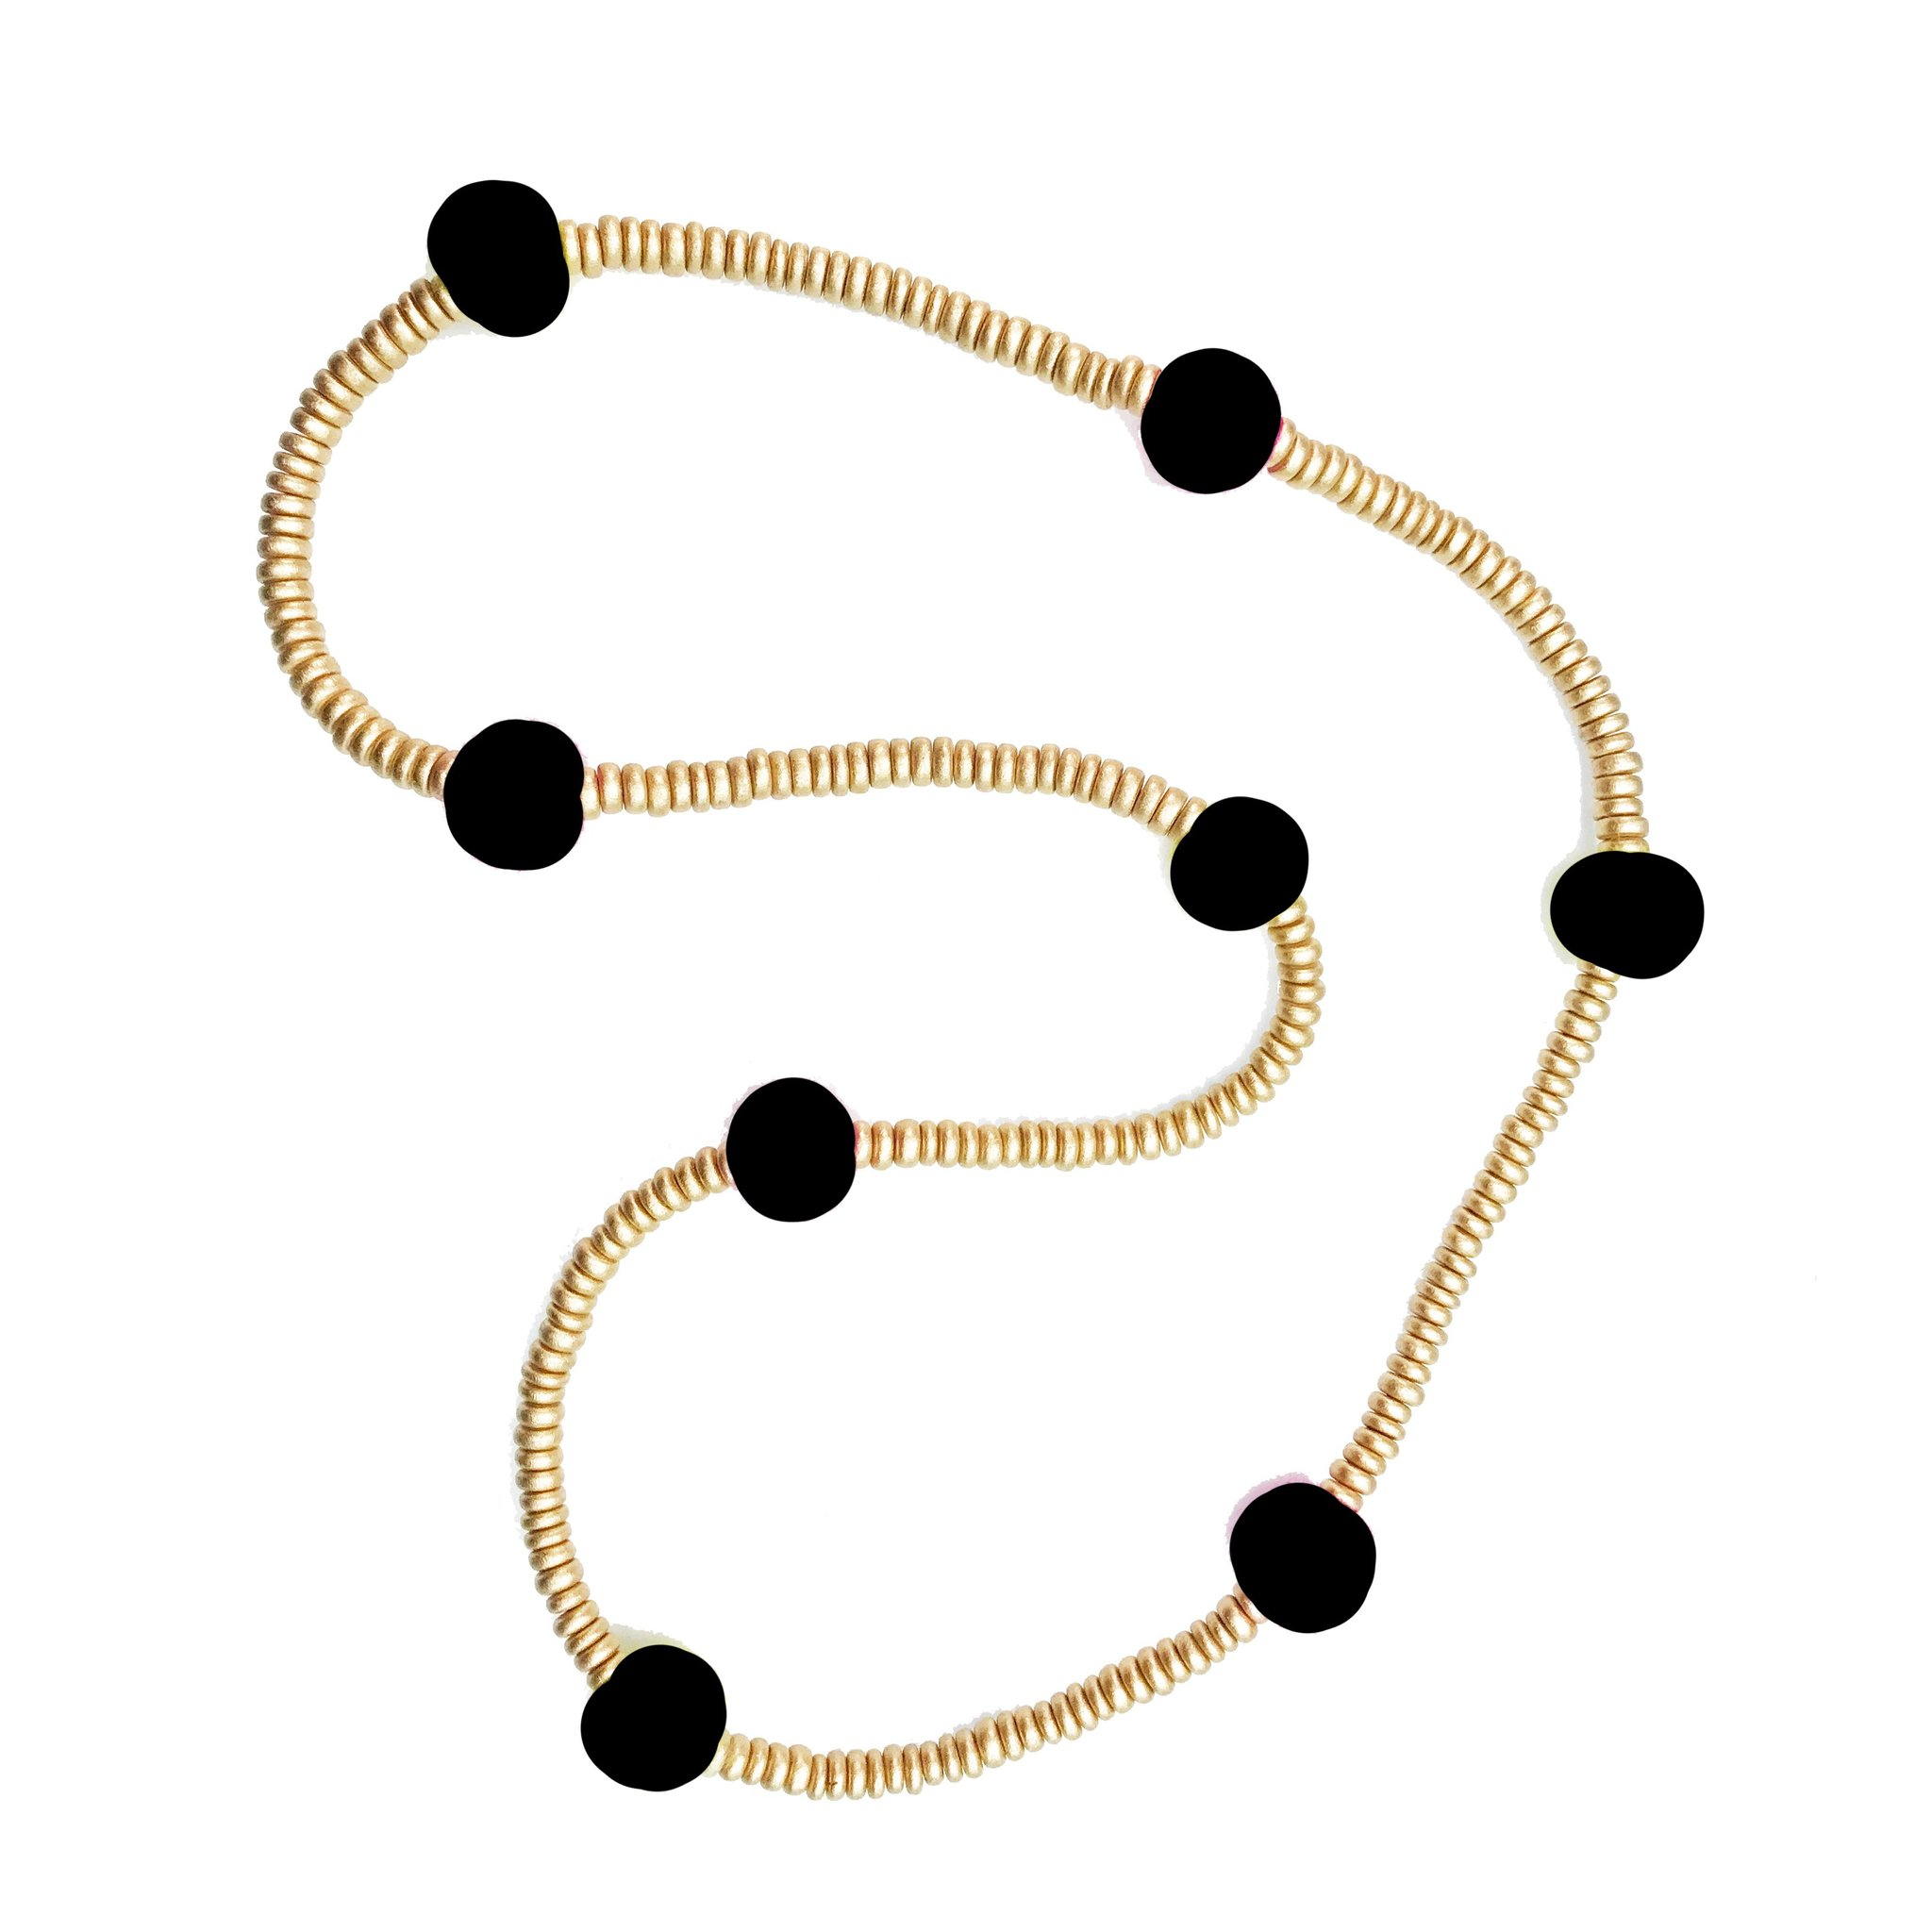 MARY-SQUARE-Size-One-Black--Gold-Necklaces_104638A.jpg